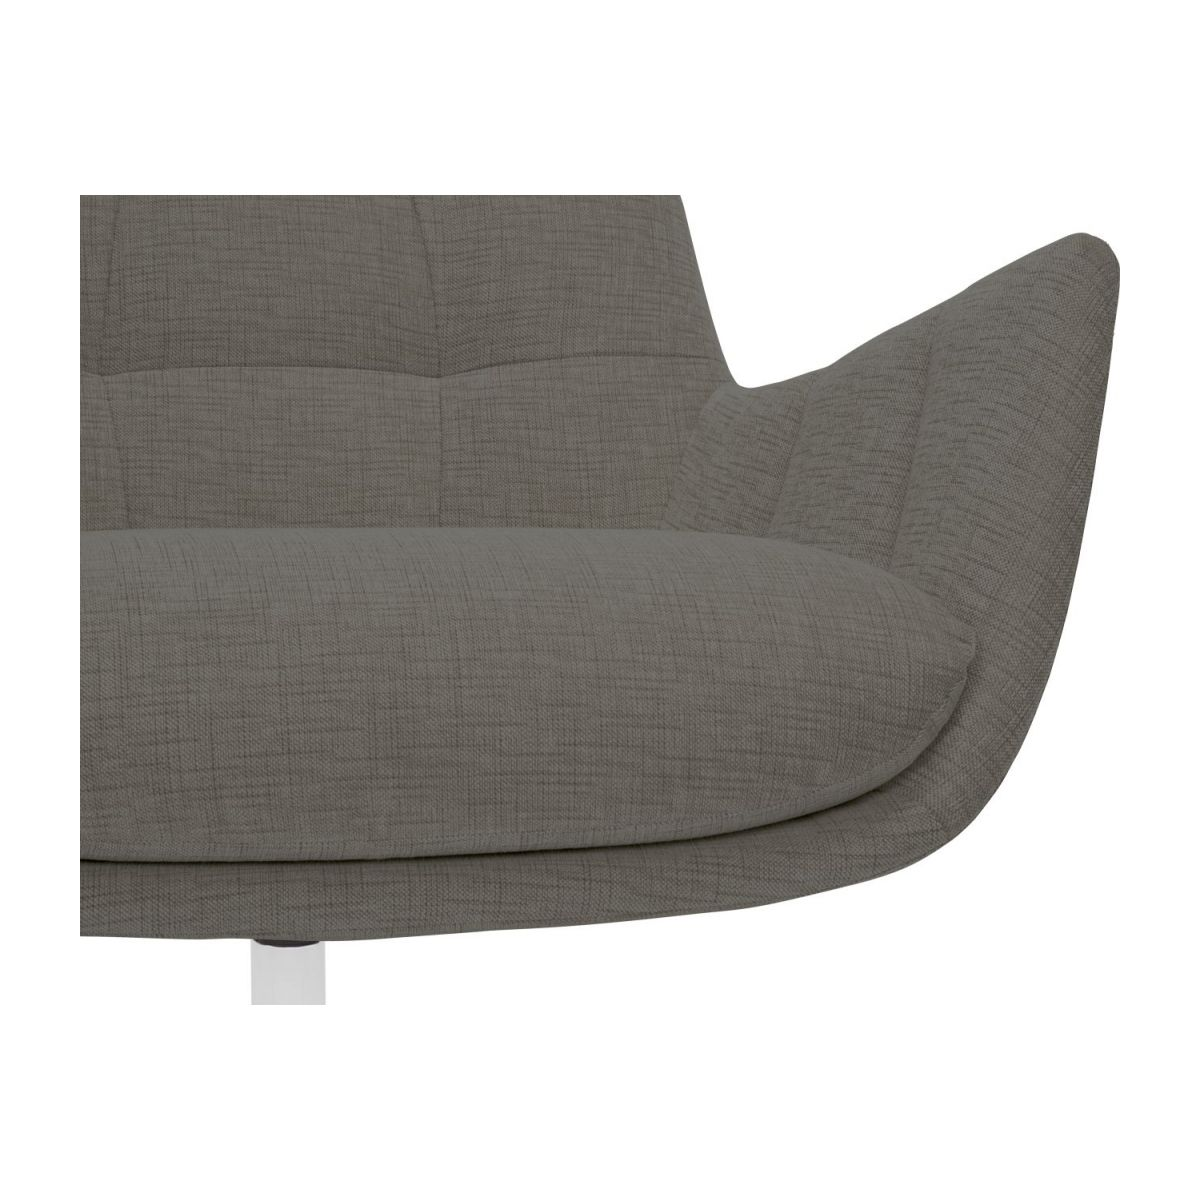 Armchair in Ancio fabric, river rock with metal cross leg n°7